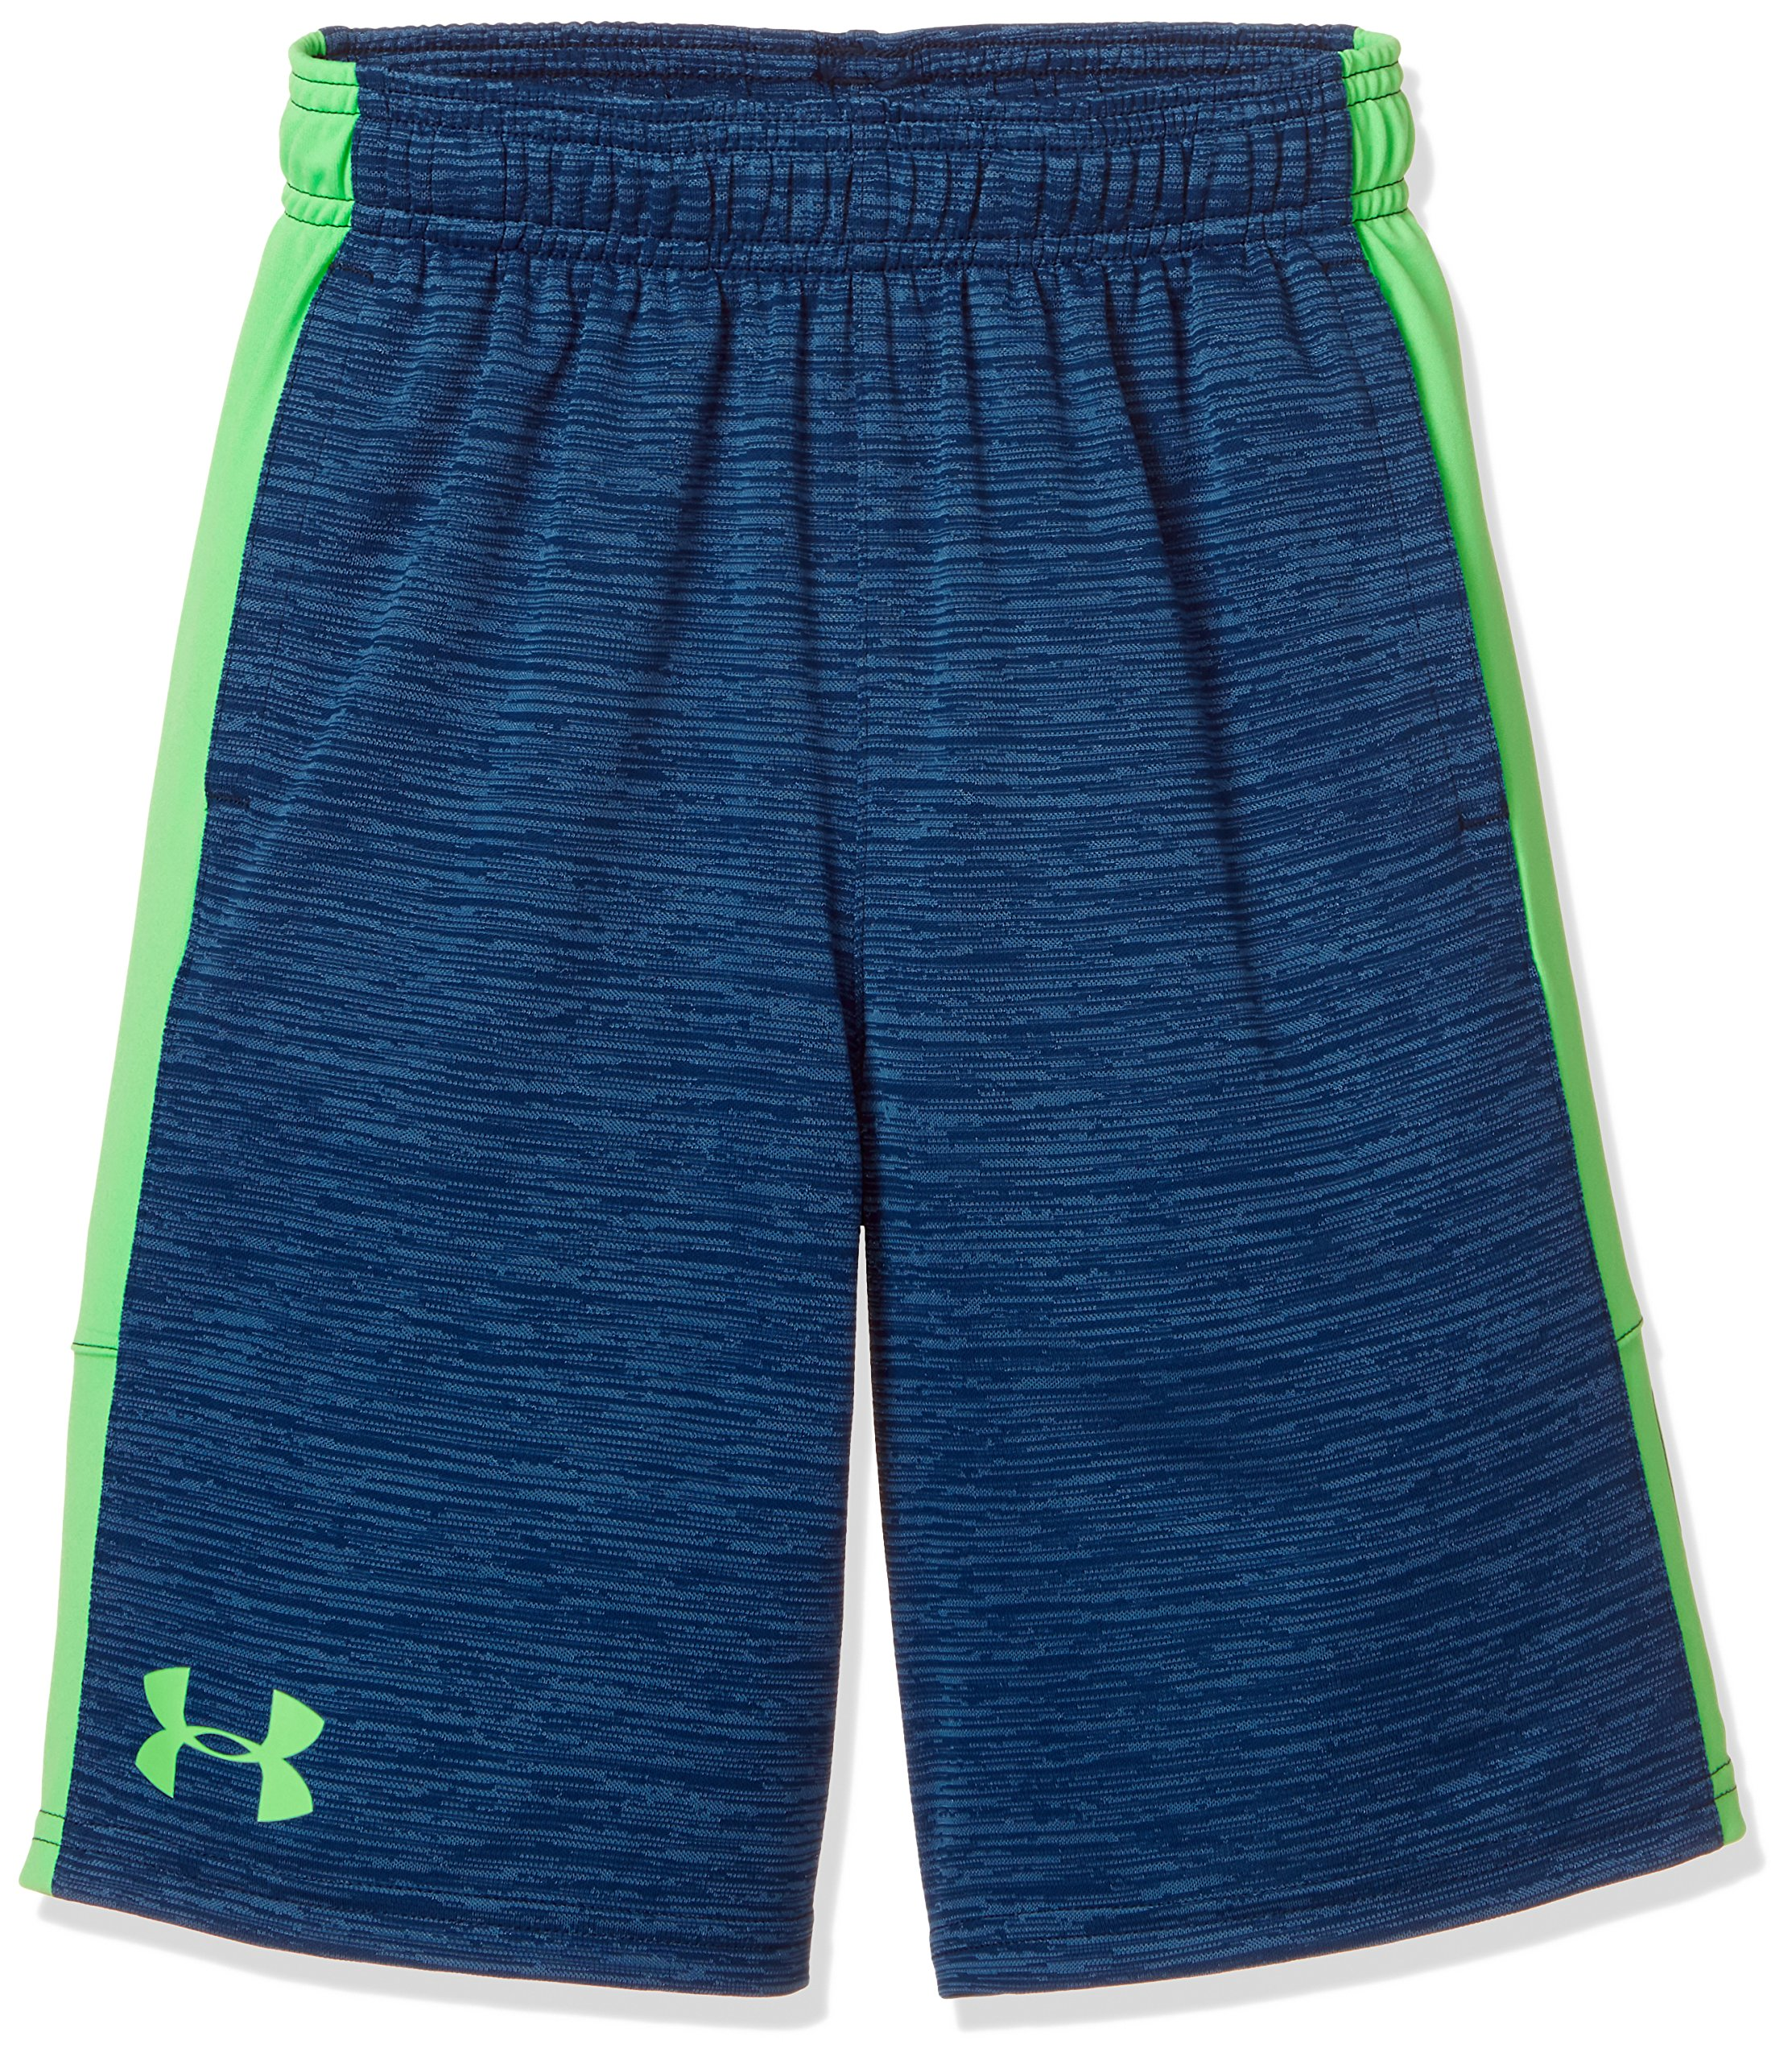 Under Armour Boys Stunt Printed Short, Blue/Green/Blue, YS by Under Armour